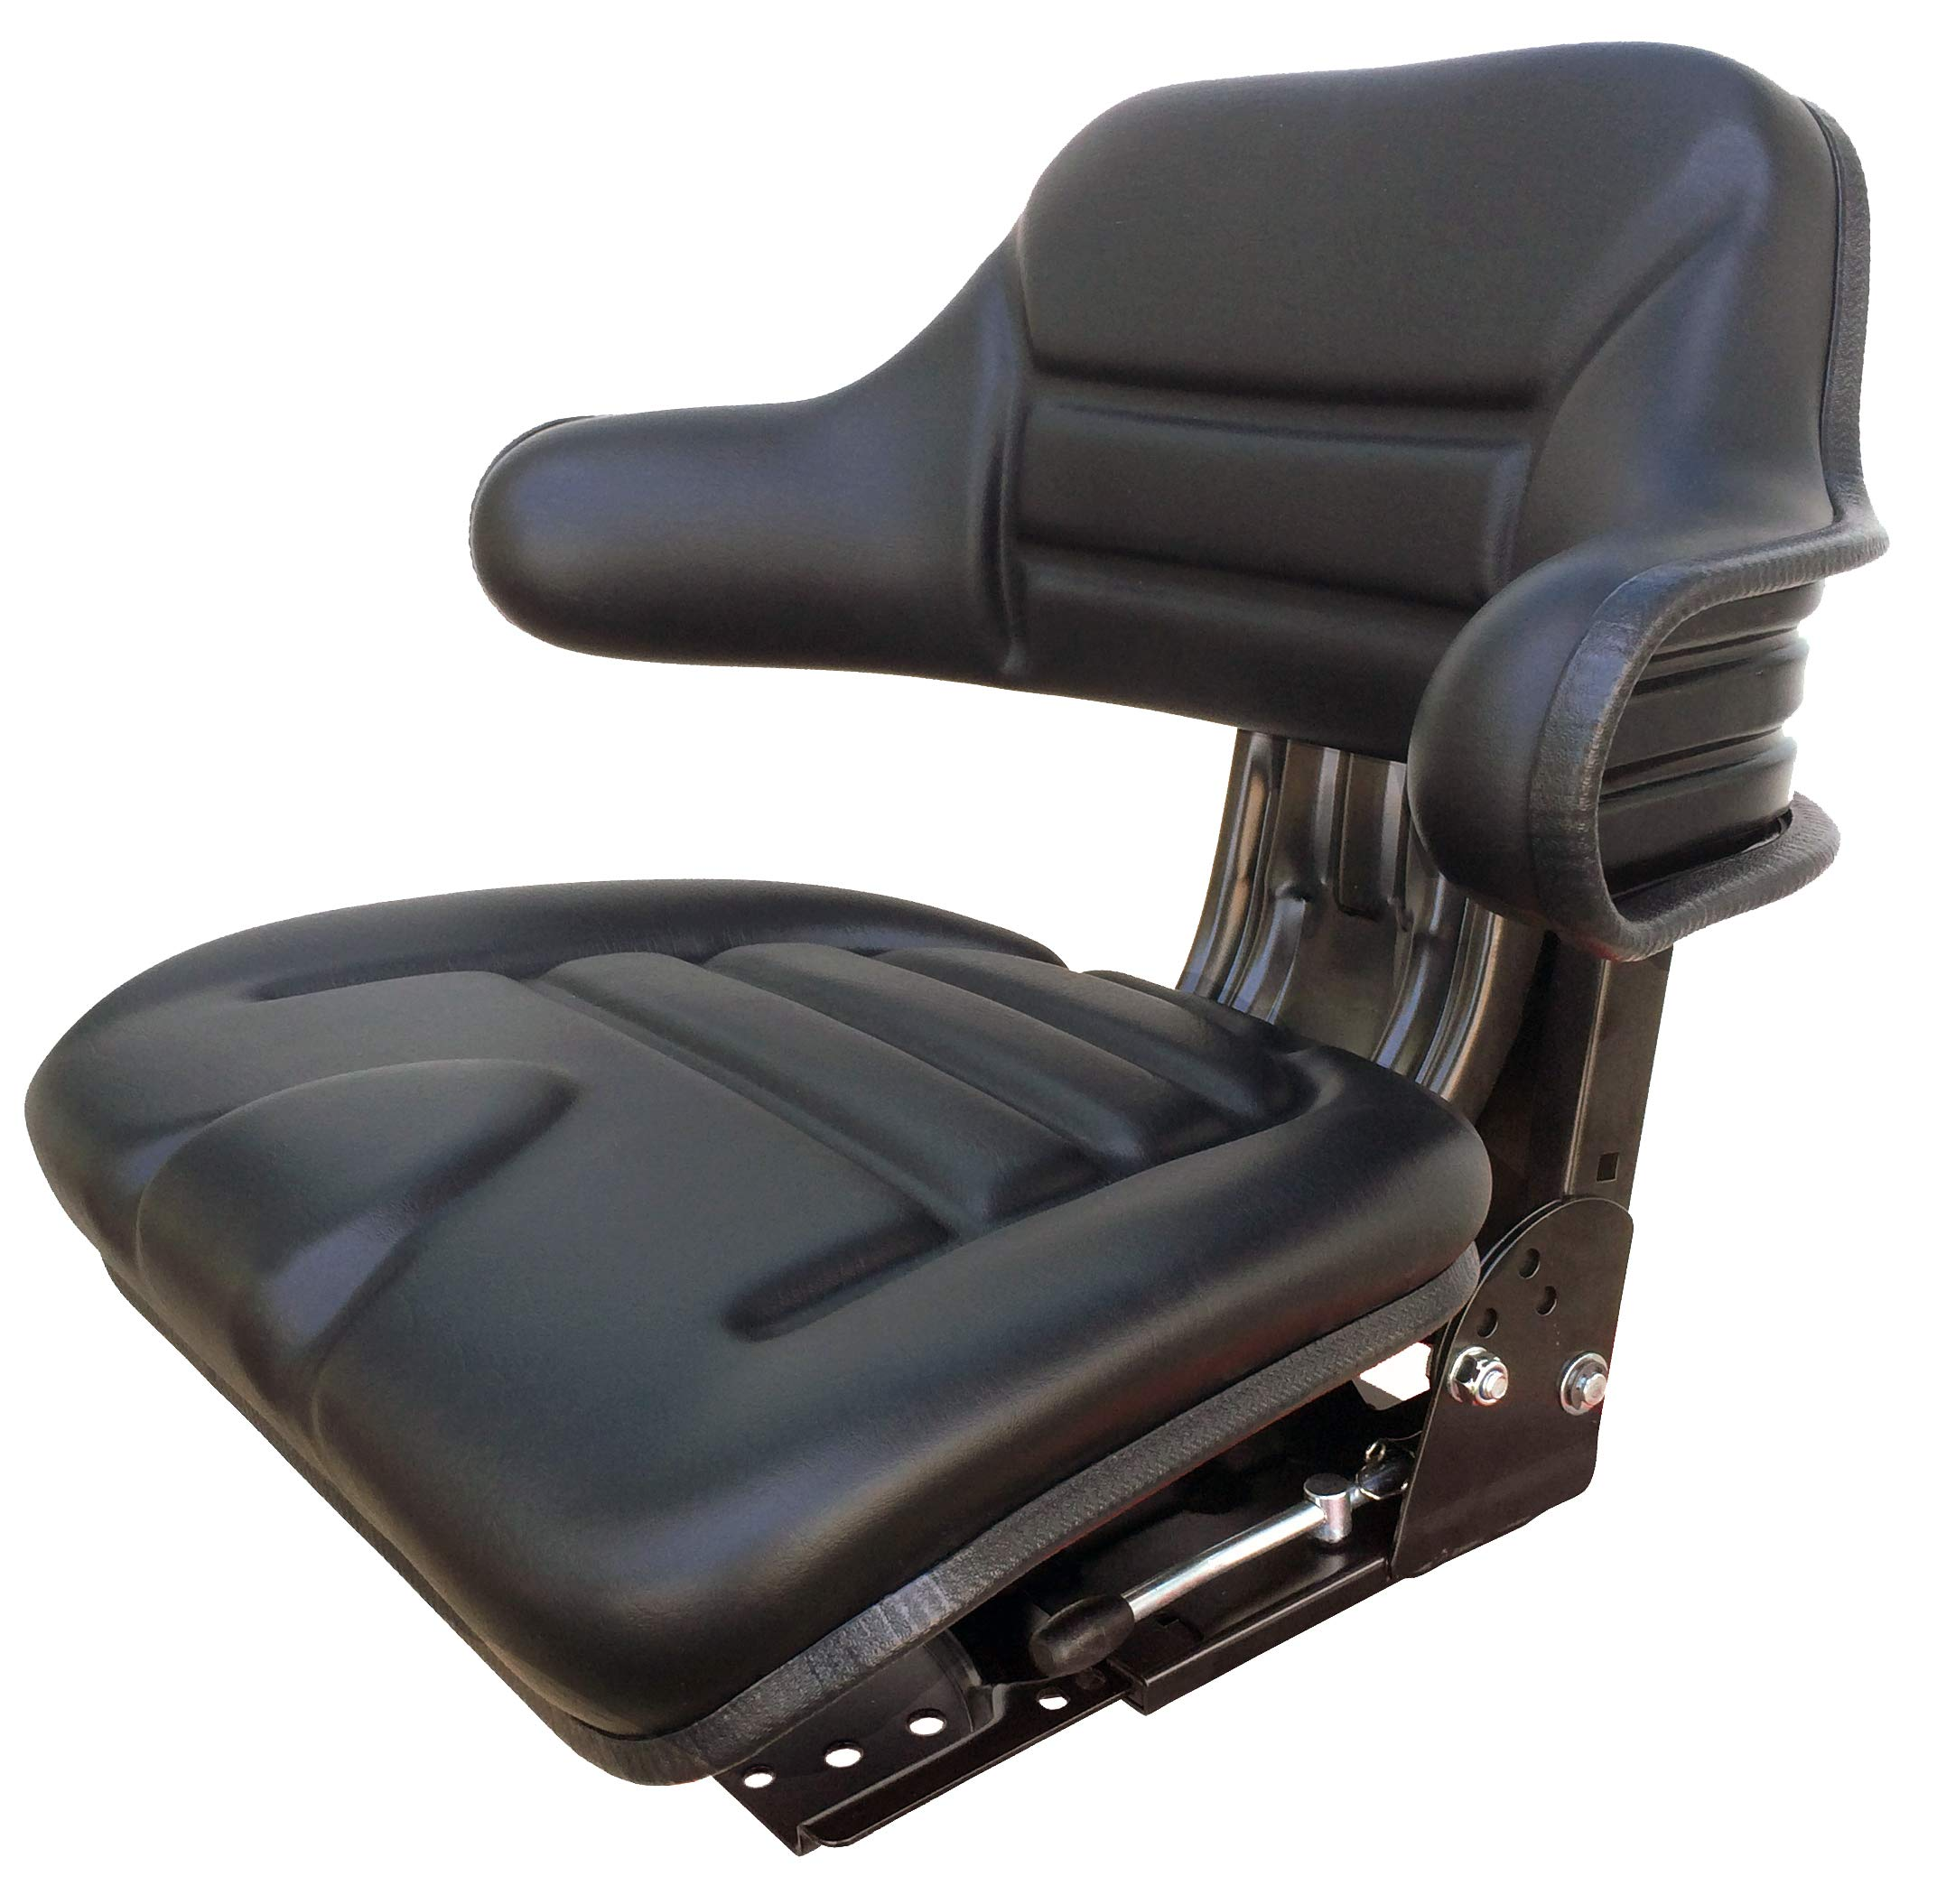 Star ECO 110 Black Suspension Slide Adjustment Multi Angle Base Universal Tractor Seat (Replacement for Several)